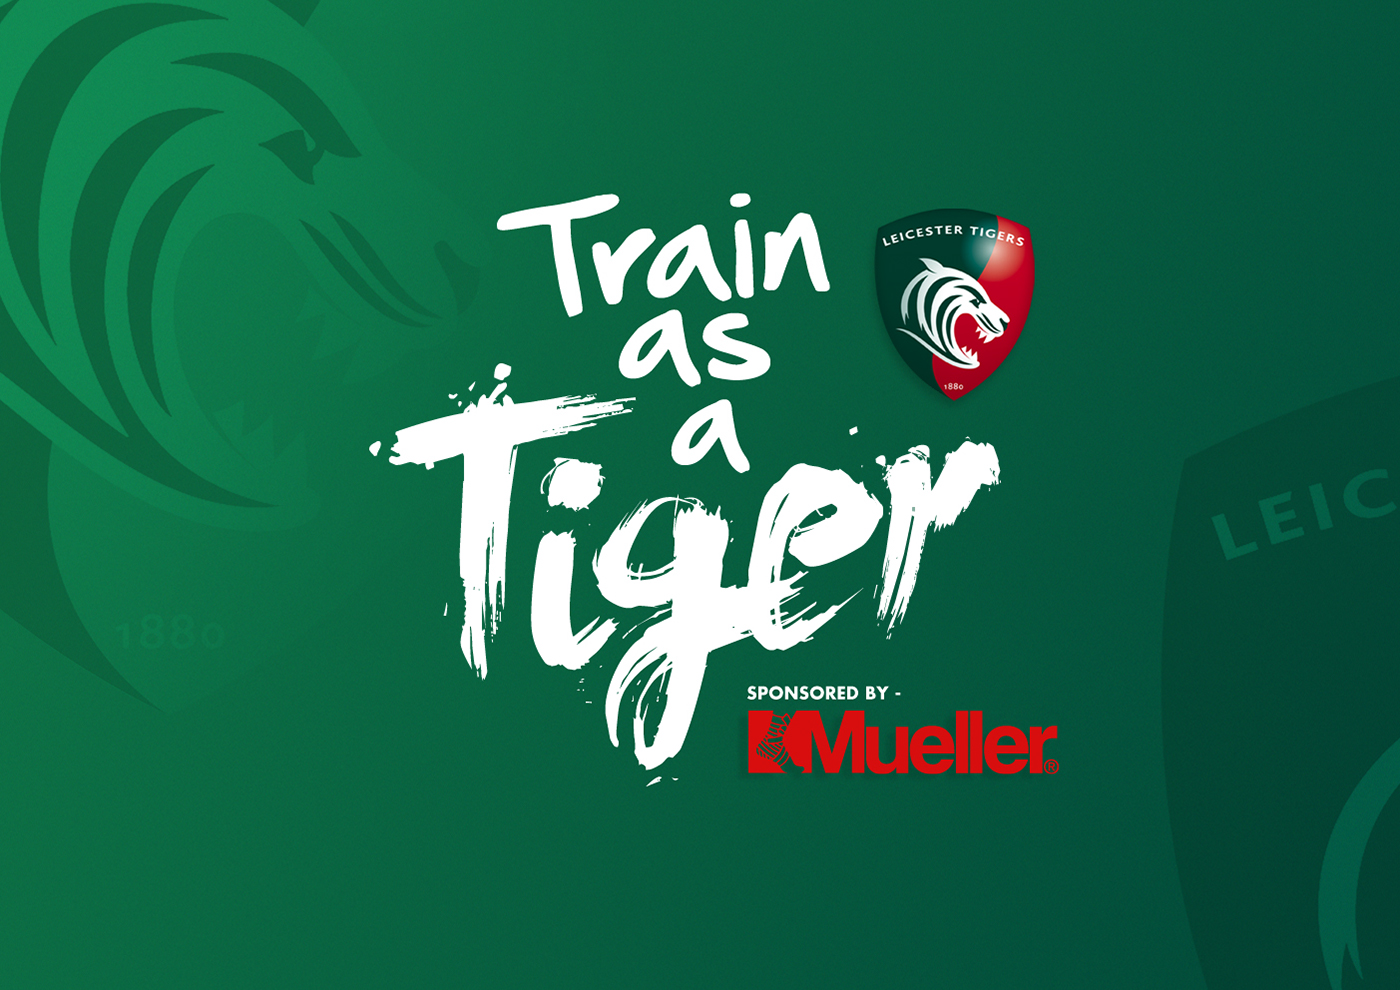 Leicester Tigers Competition (2012)